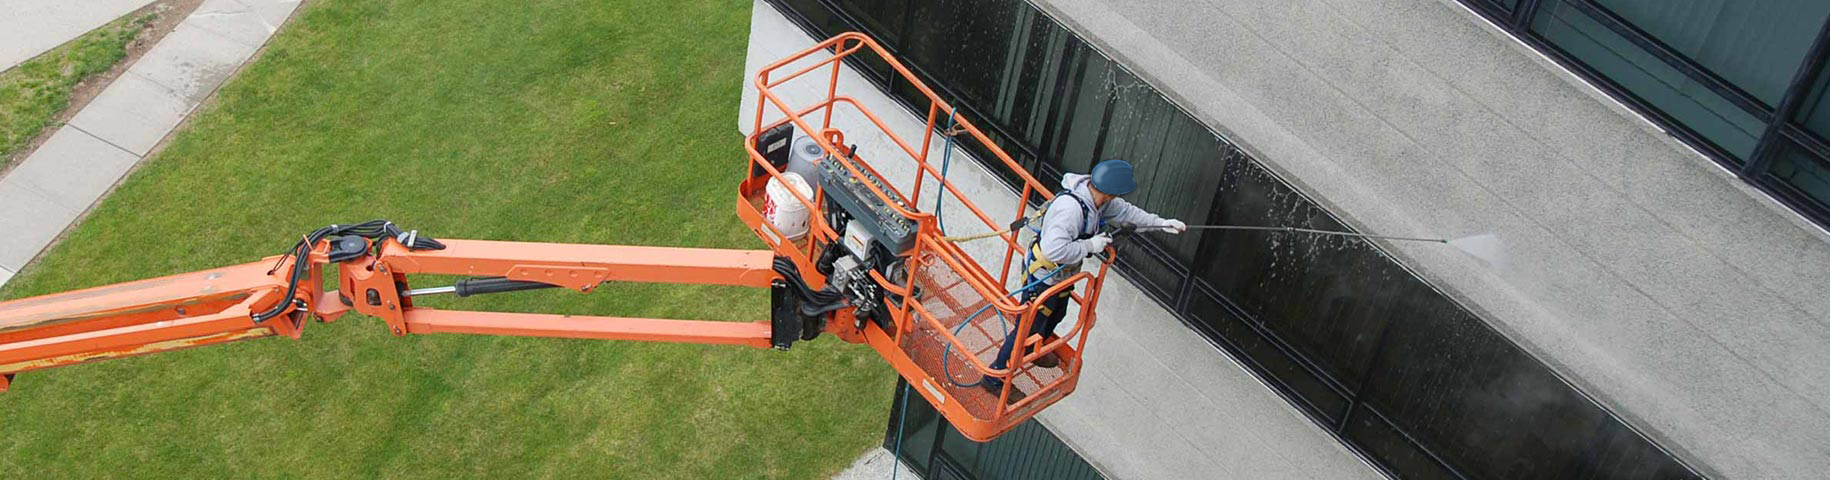 Man on Lift Powerwashing